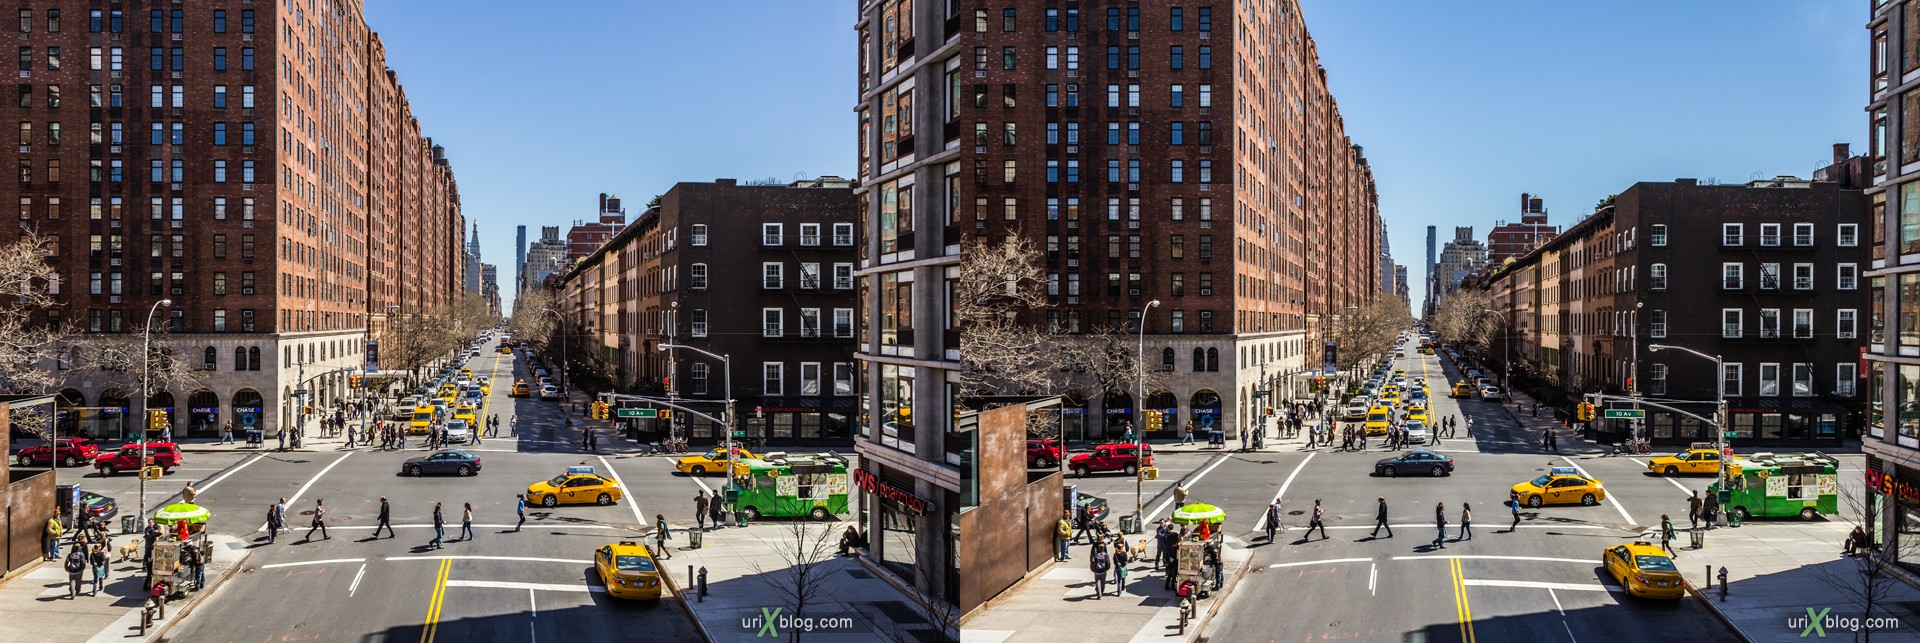 2013, NYC, New York, Manhattan, W 23rd Street, High Line, view from the top, city, building, skyscraper, panorama, 3D, stereo pair, cross-eyed, crossview, cross view stereo pair, stereoscopic